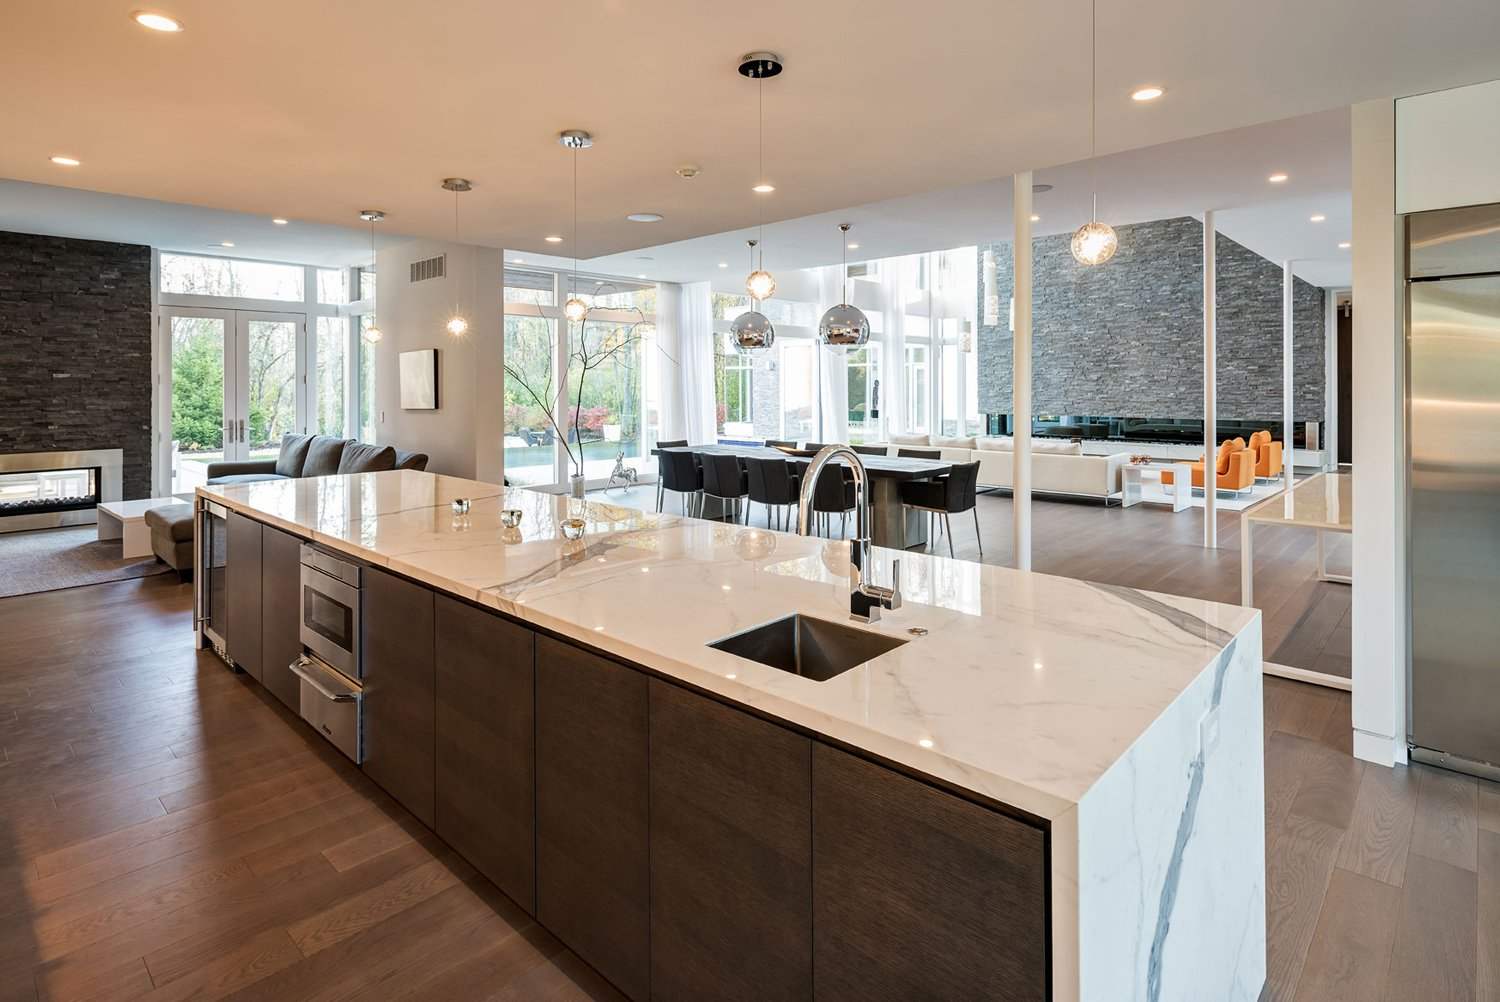 The kitchen of the Bentleyville Residence Christian Phillips Photography